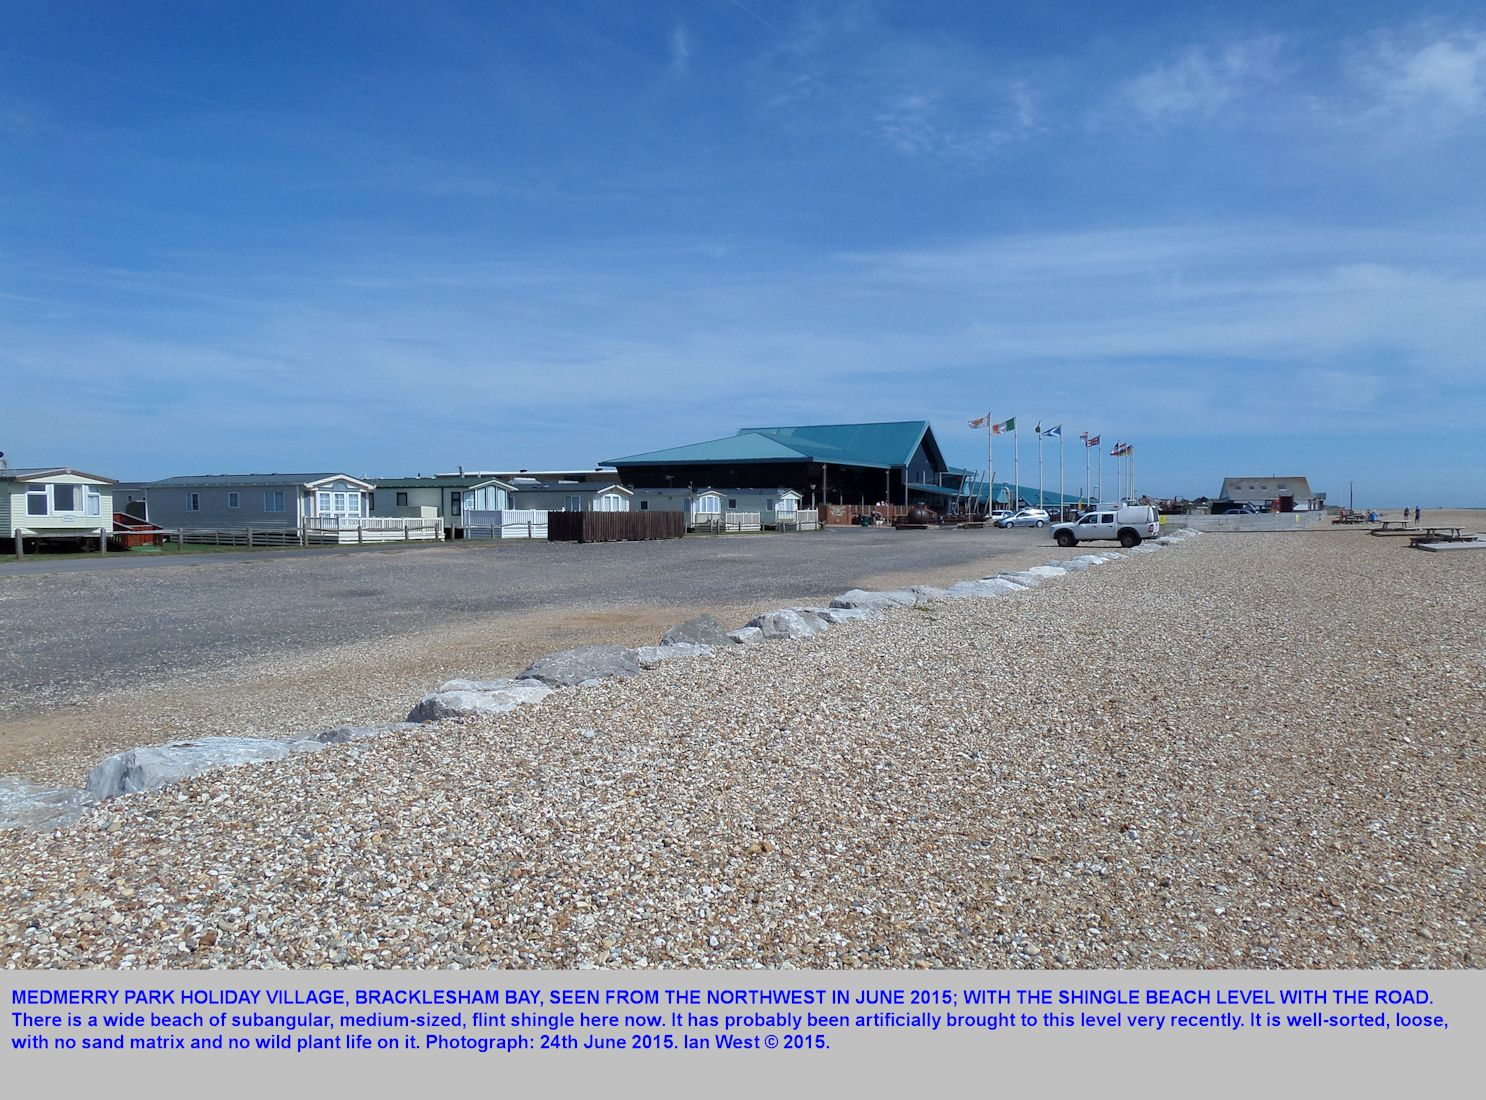 Medmerry Park, Bracklesham Bay, Sussex, seen from the northwest, after new sea defence measures were put in place